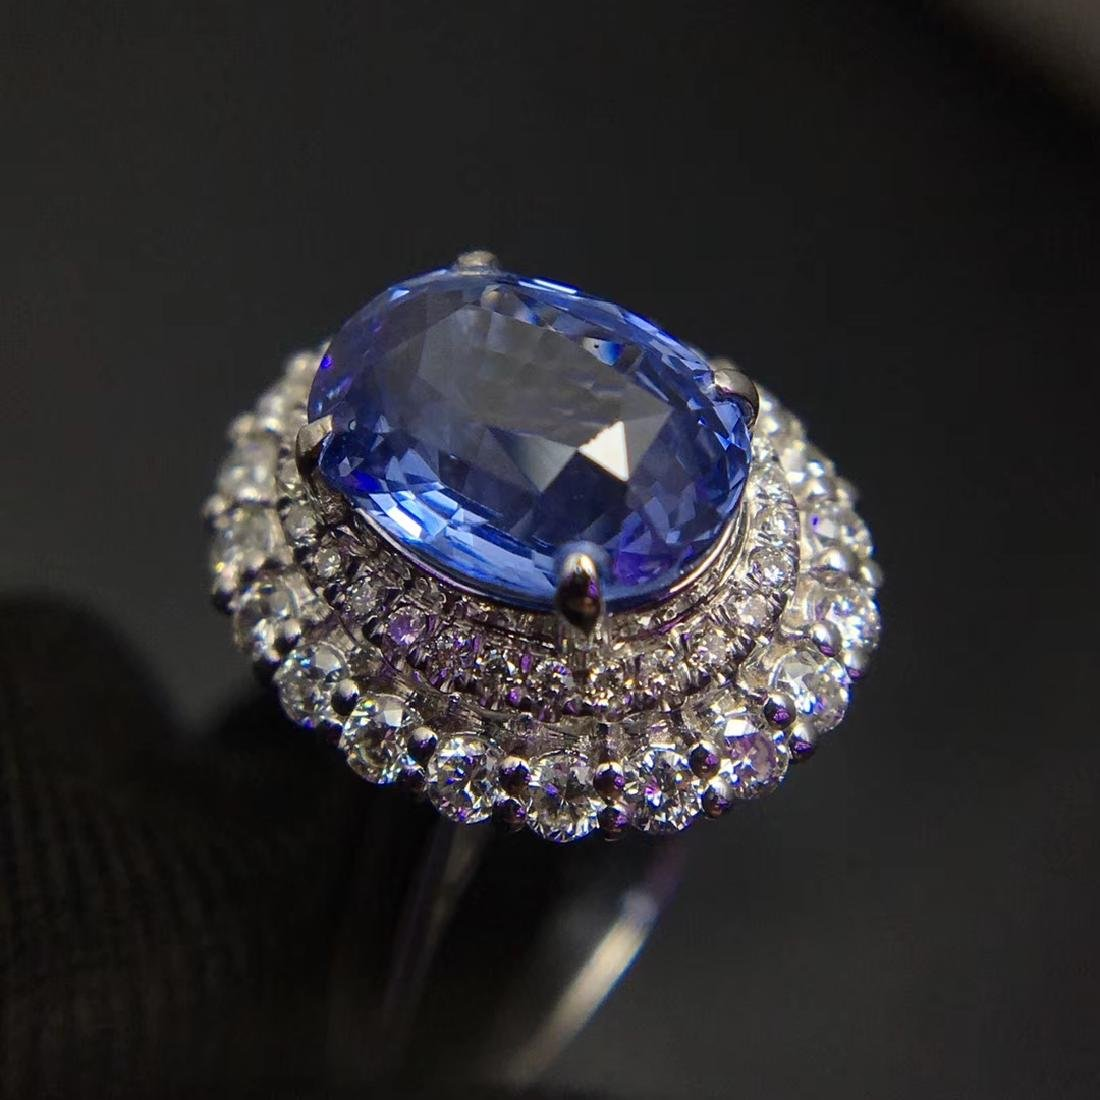 2.59ct Sapphire Ring in 18kt White Gold - 3